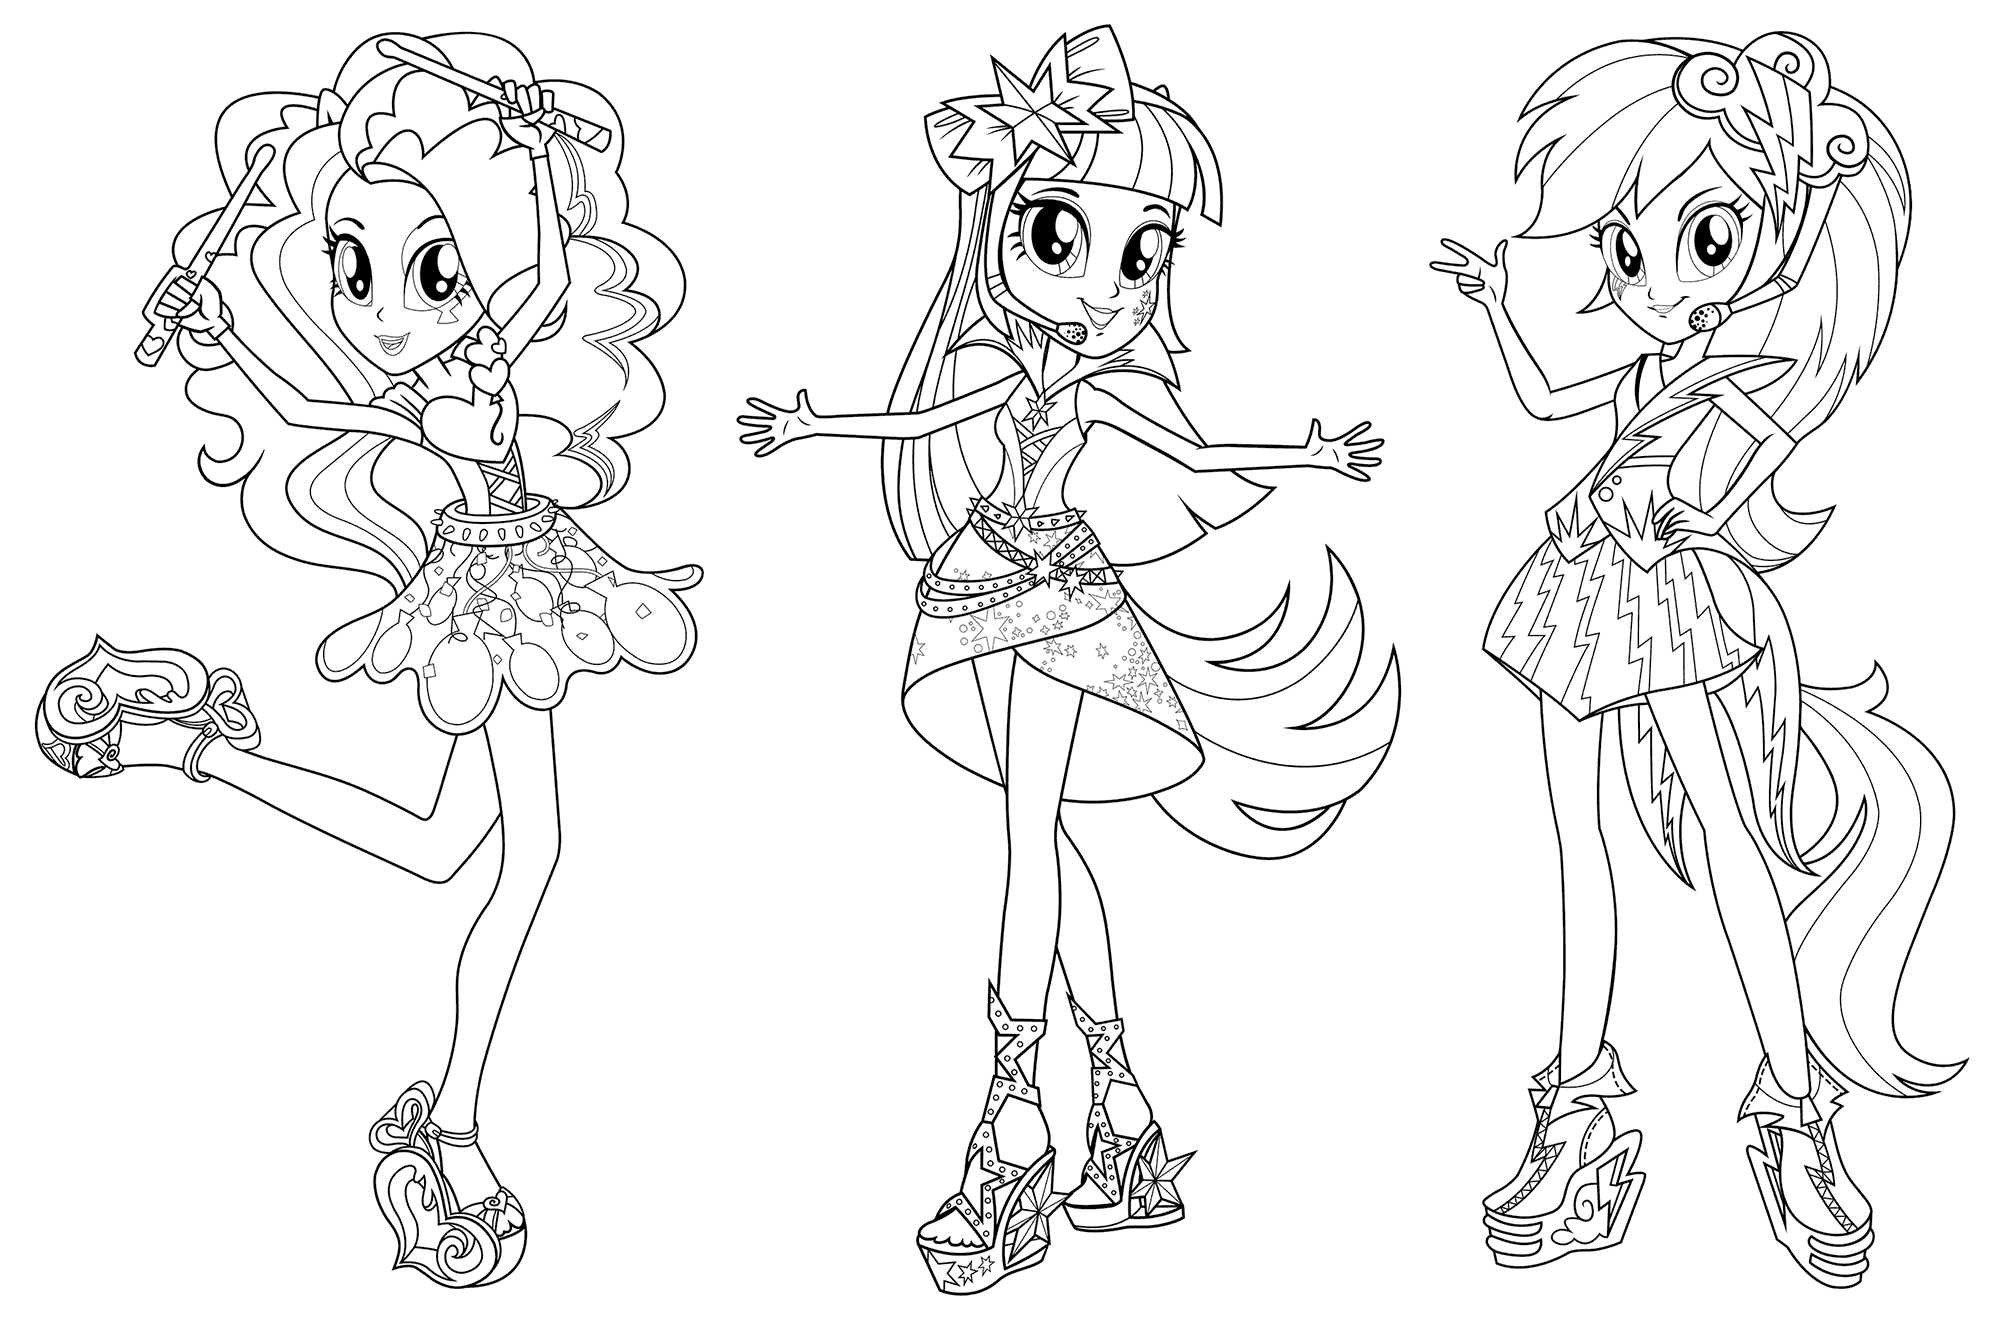 Equestria Girls Coloring Pages Custom My Equestria Girl Rainbow Rocks Coloring Page  My Little Pony Design Inspiration